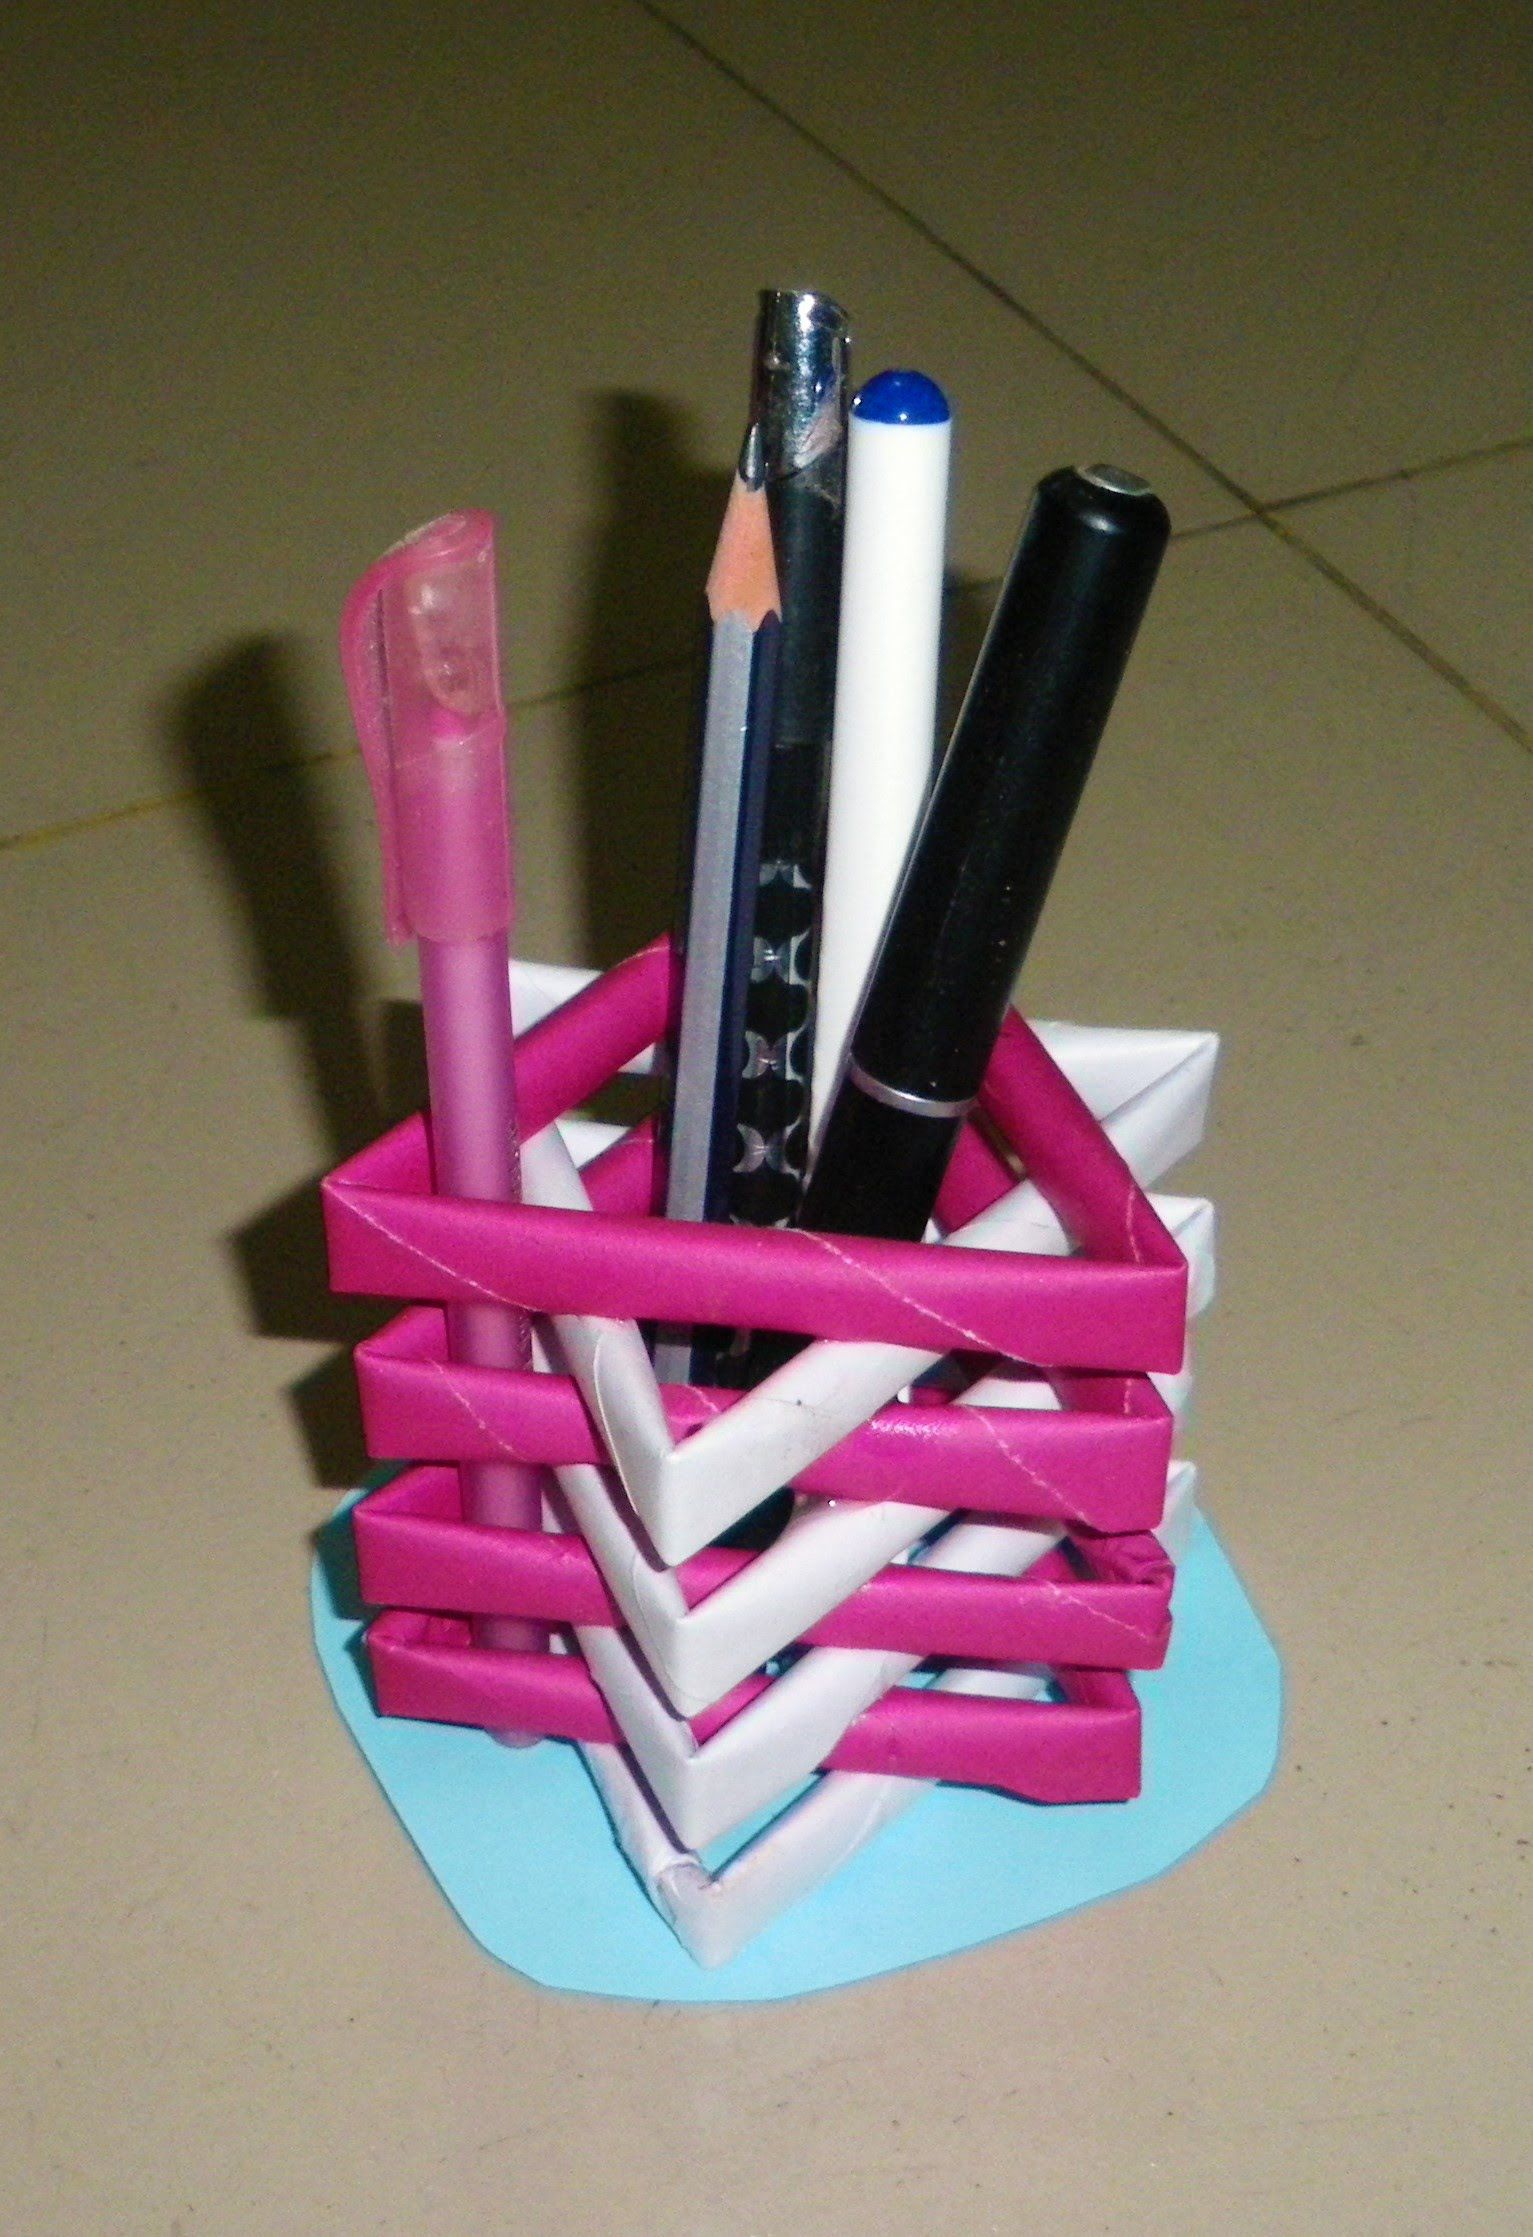 How to make a pen stand from waste material diy paper for Make project using waste materials